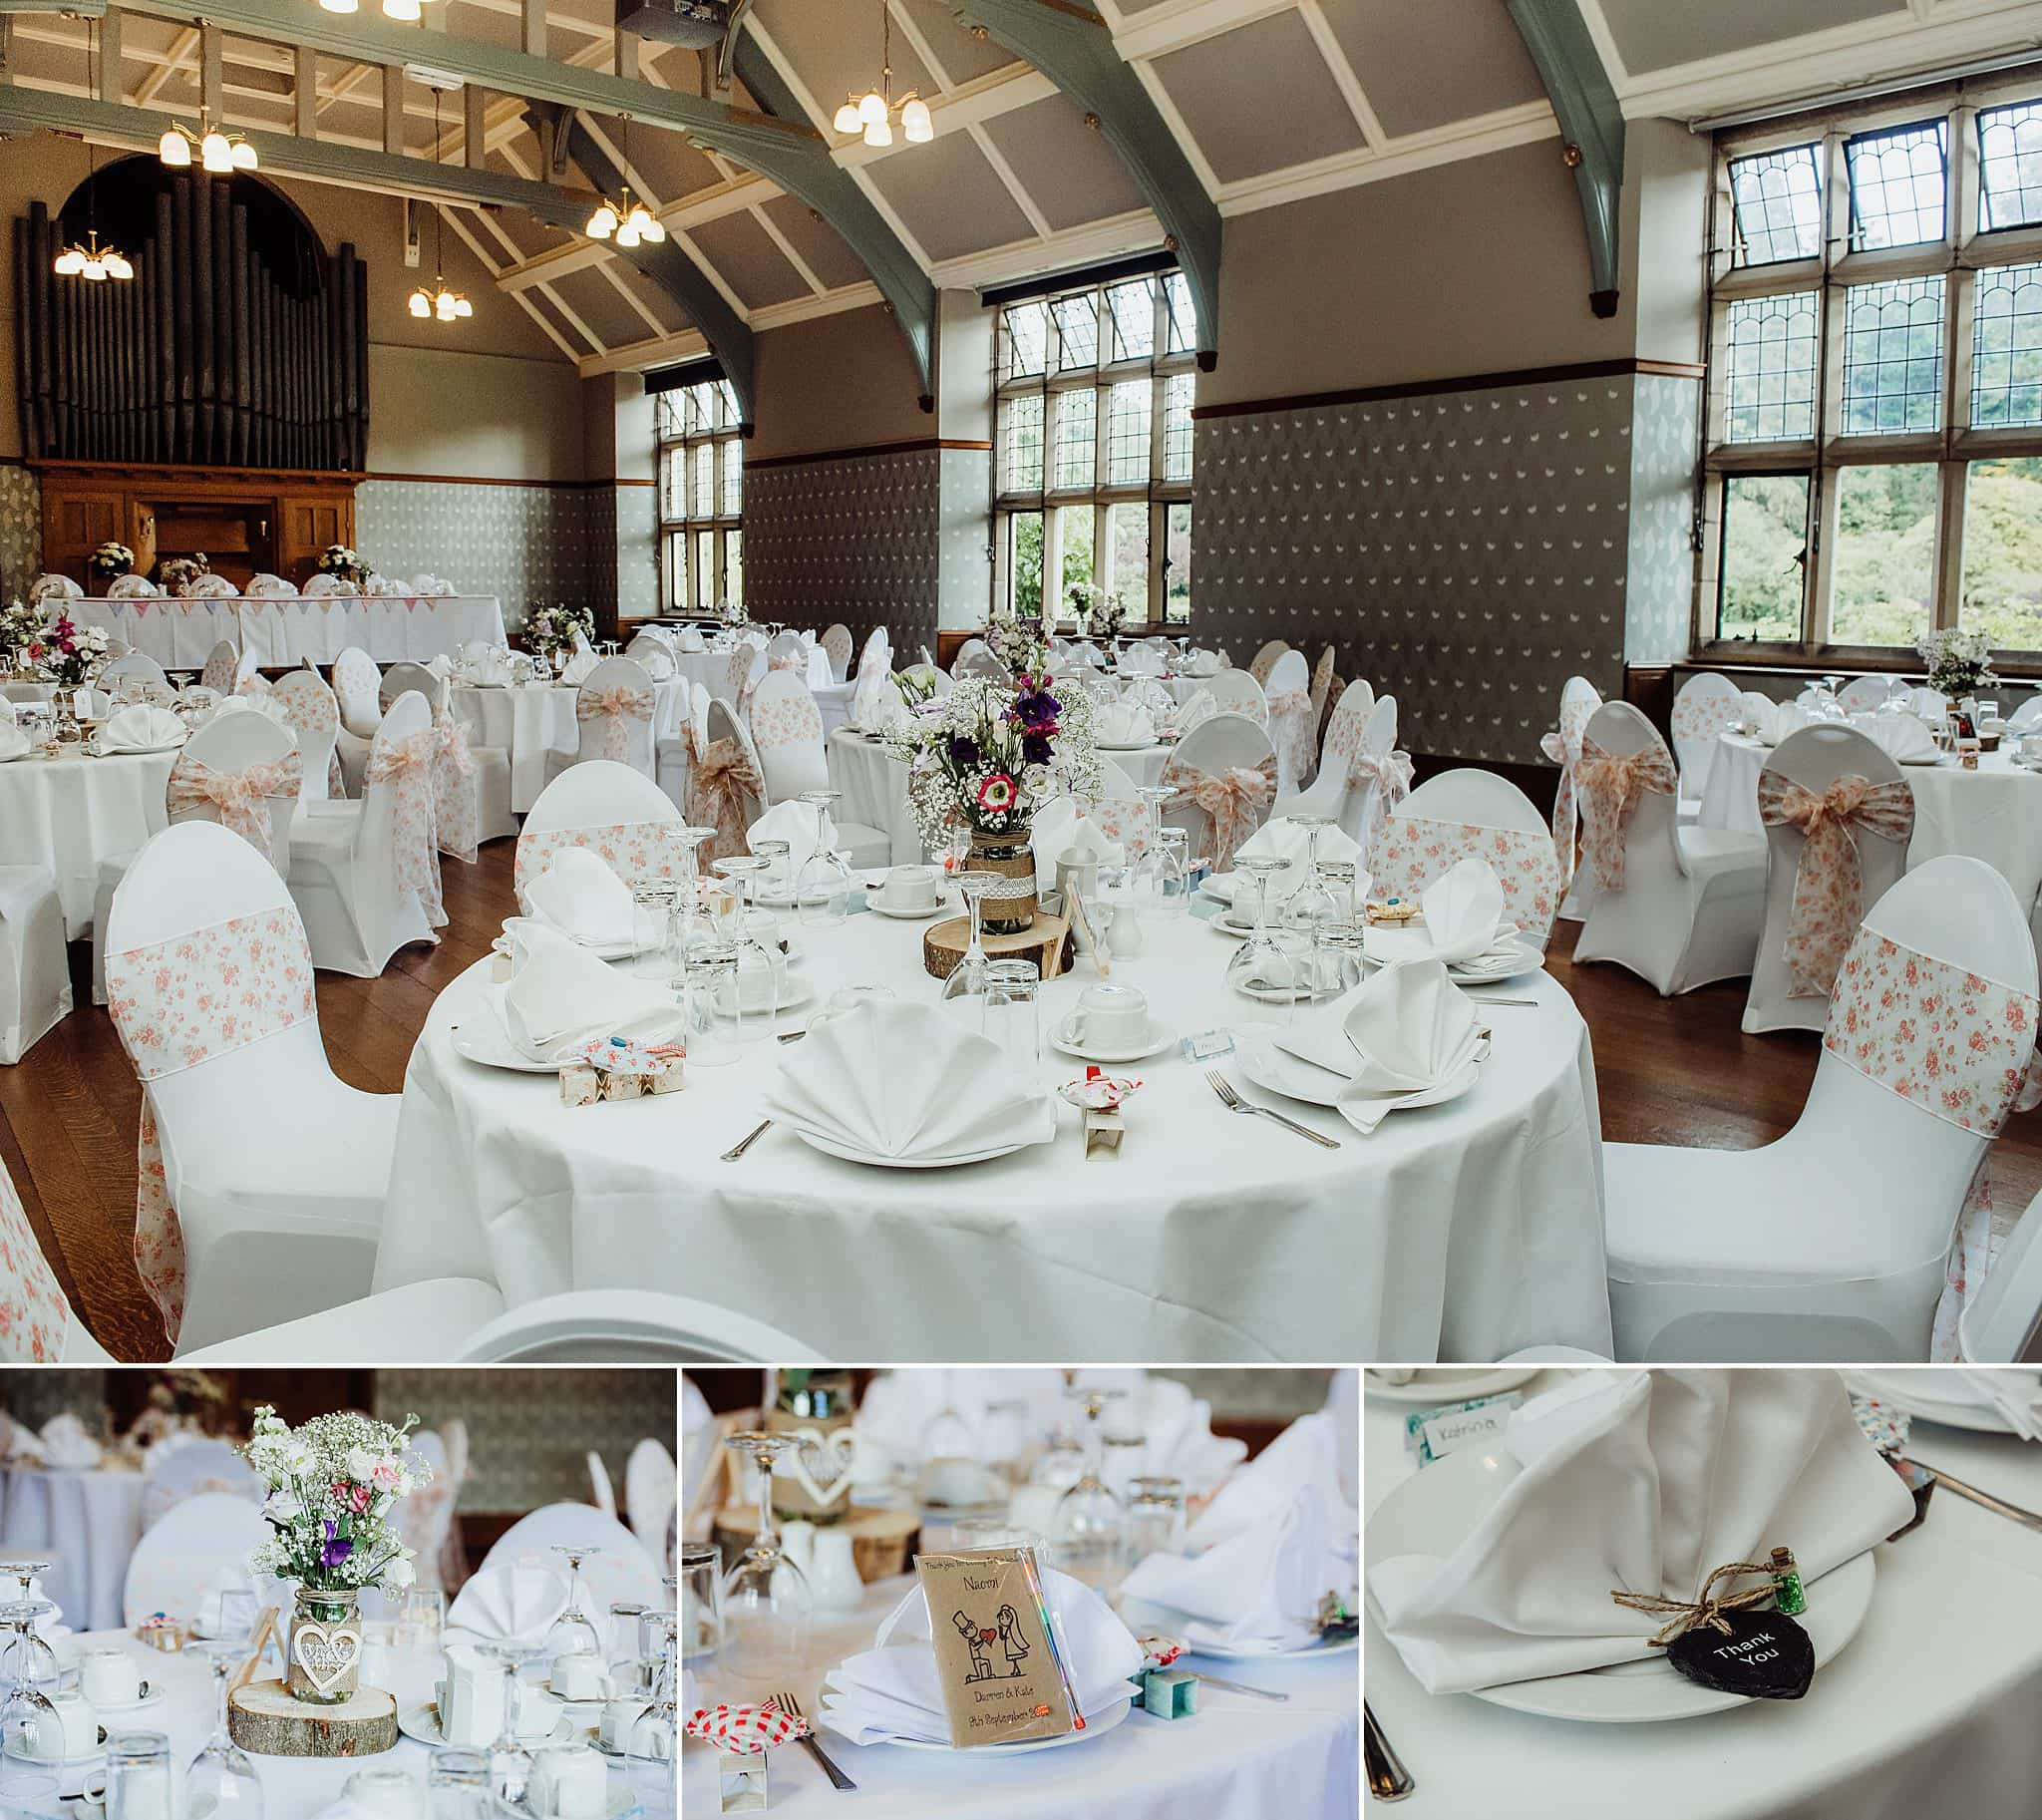 Tables set up for wedding breakfast at Gregnog Hall